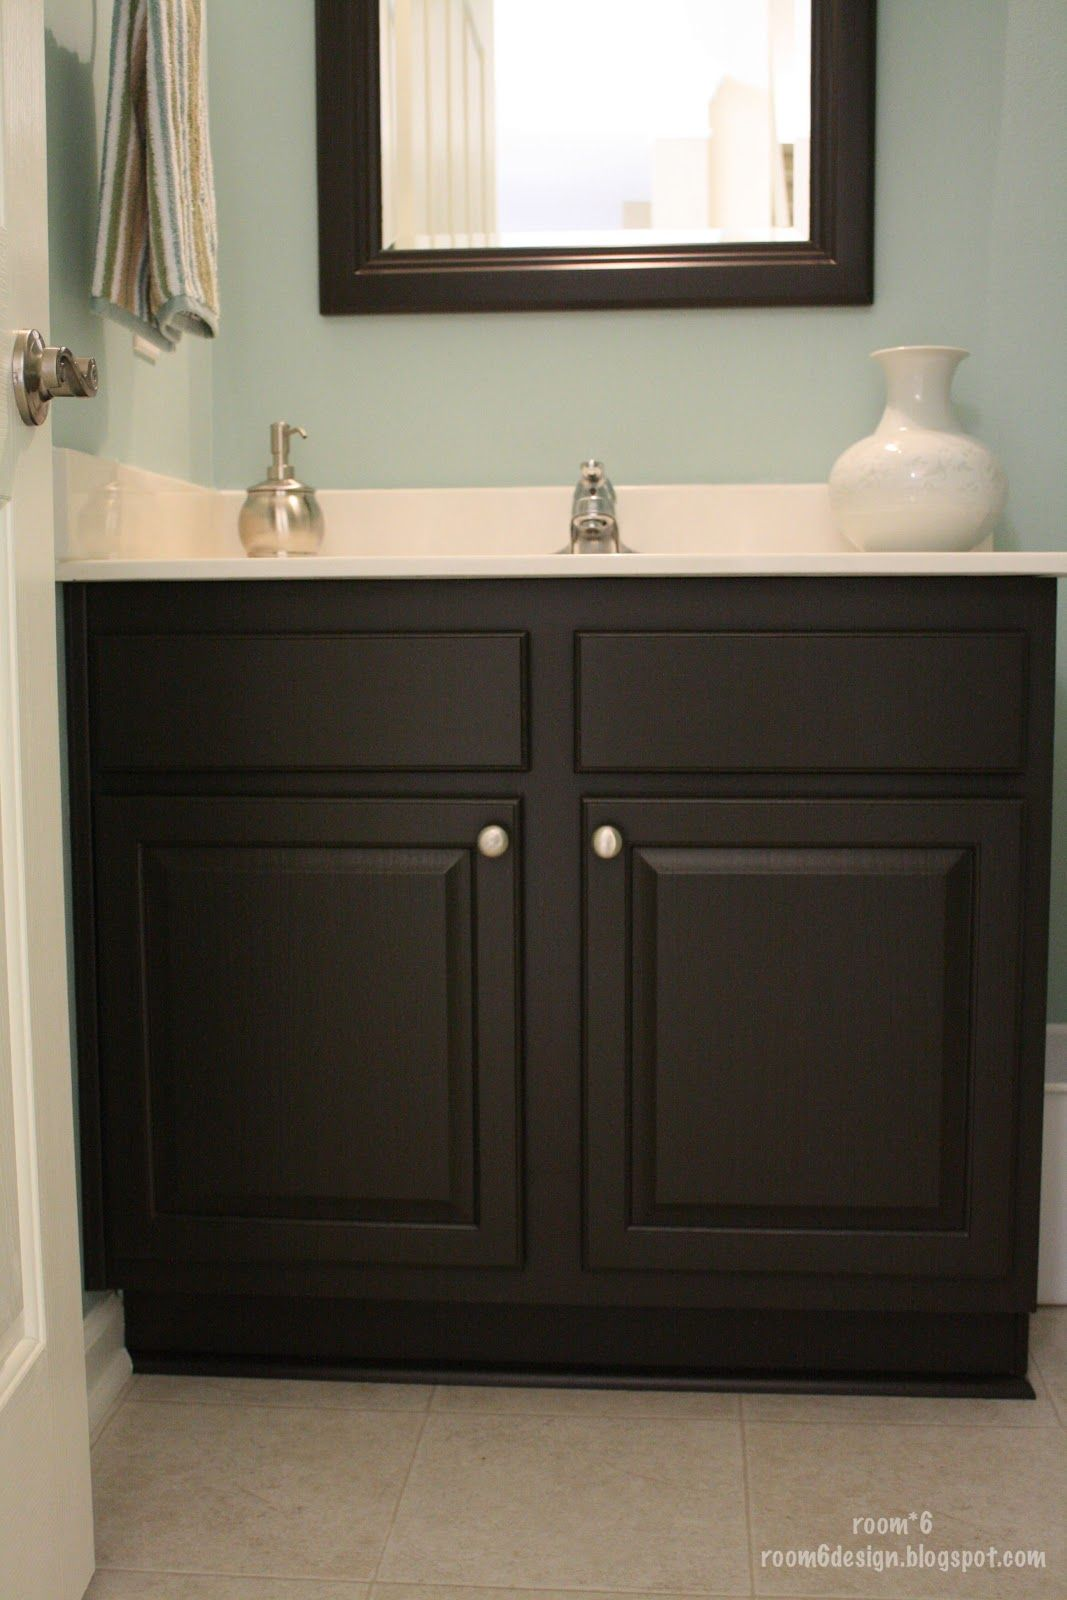 Oh I Want To Paint Our Bathroom Cabinet For The Home Pinterest - What paint to use on bathroom cabinets for bathroom decor ideas